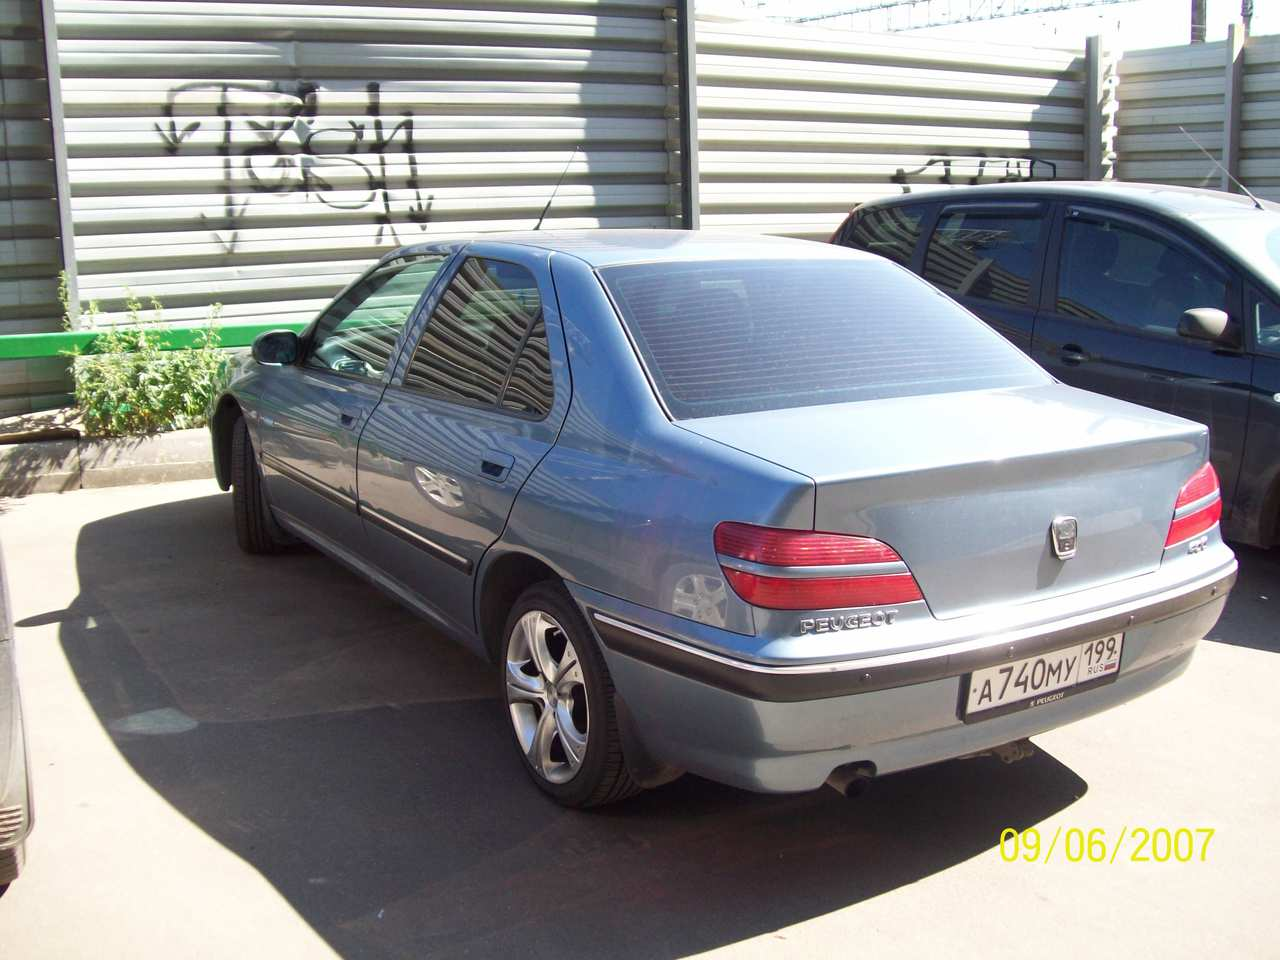 used 2001 peugeot 406 photos 1800cc gasoline ff manual for sale. Black Bedroom Furniture Sets. Home Design Ideas